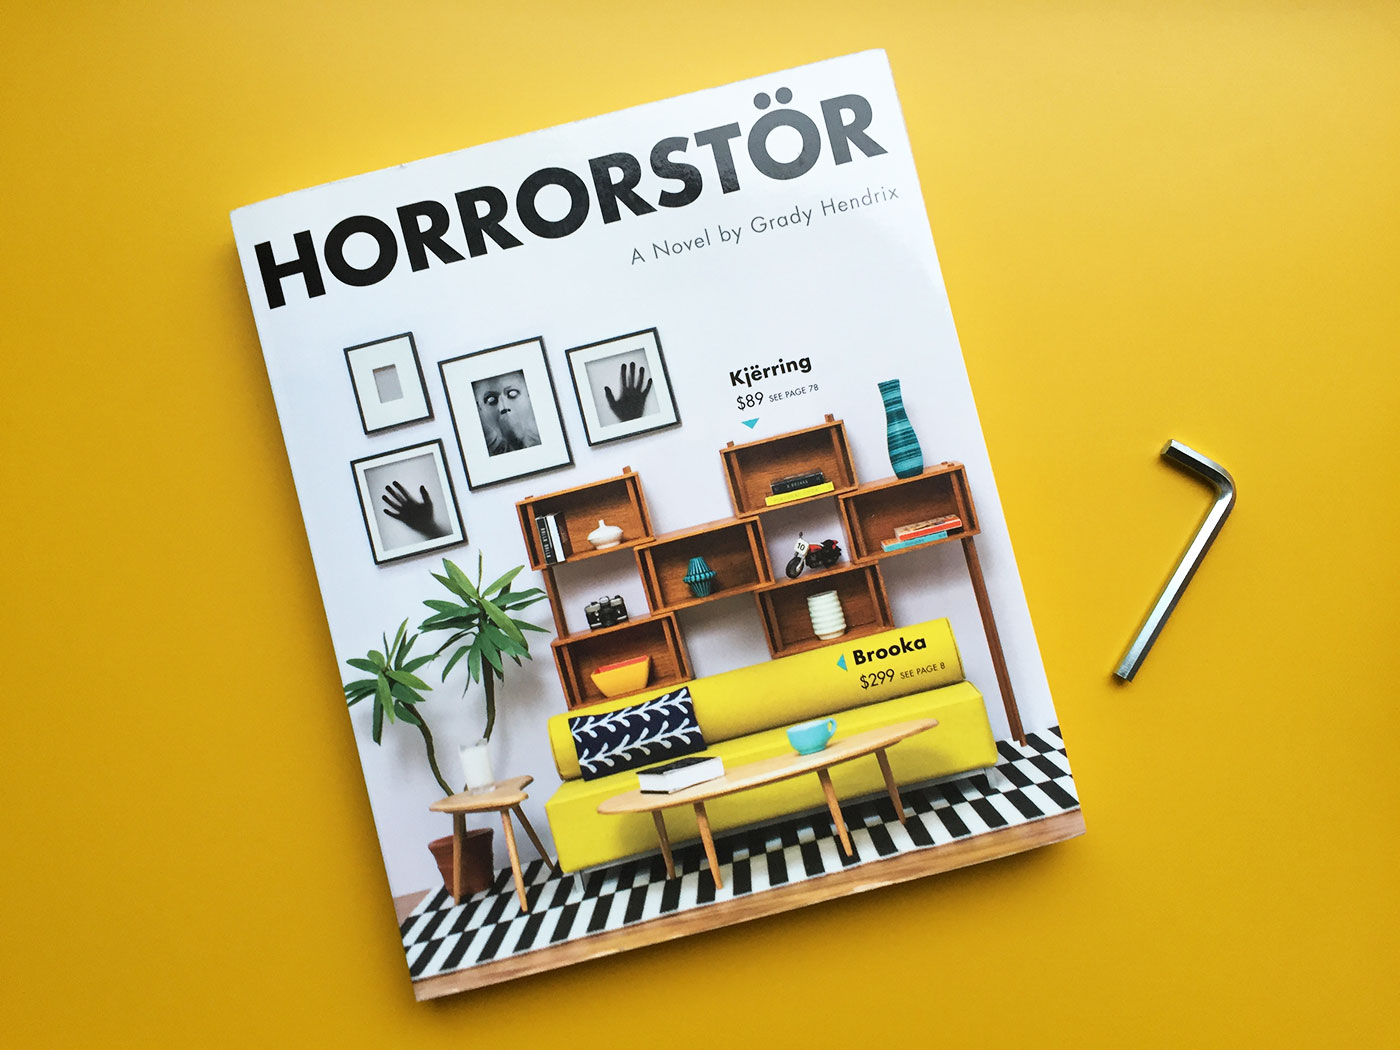 Horrorstör – novel